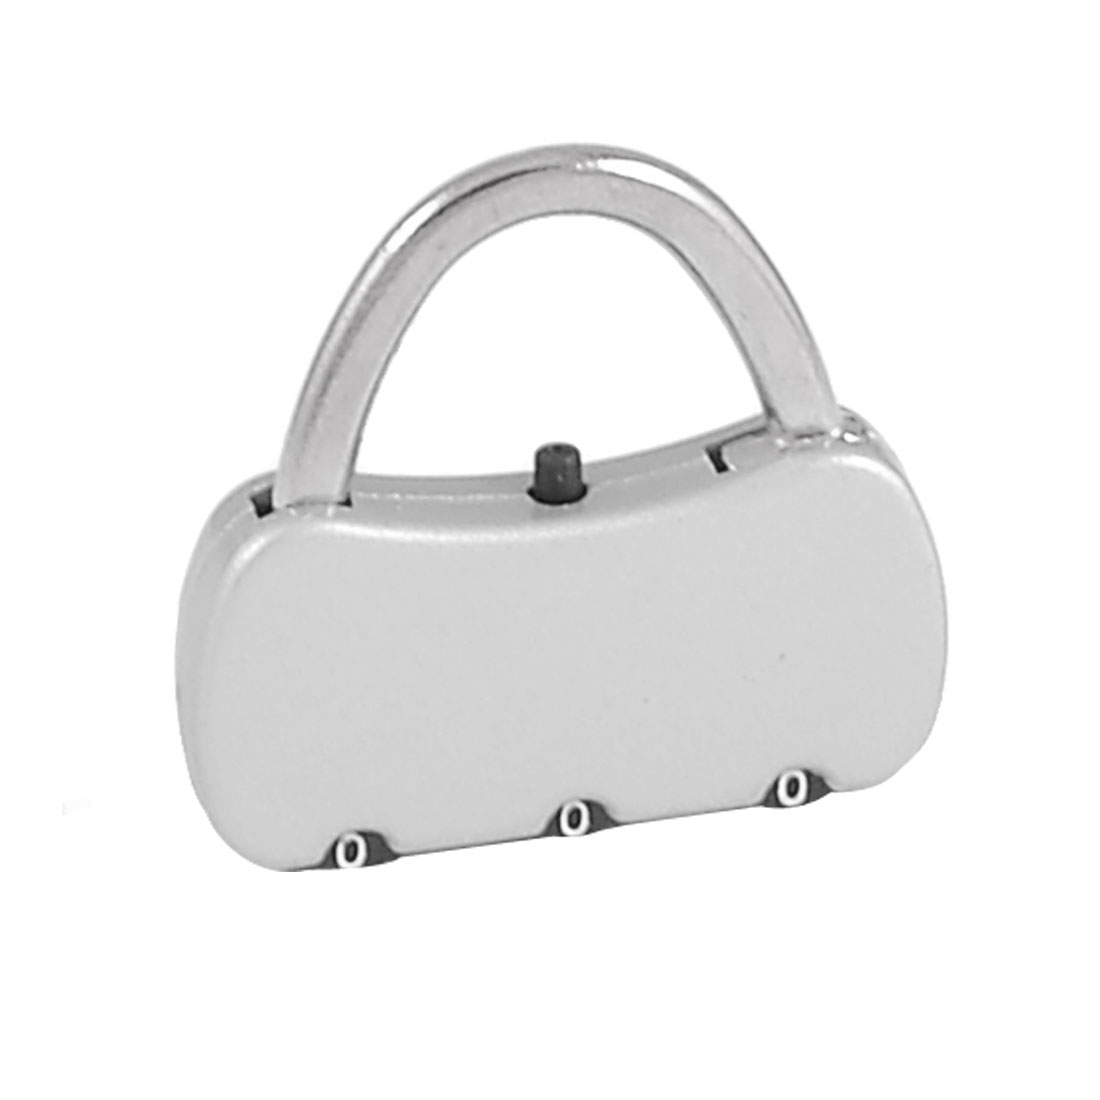 3.8cm x 3.6cm x 0.7cm Jewelry Box Resettable Silver Tone Password Security Coded Lock